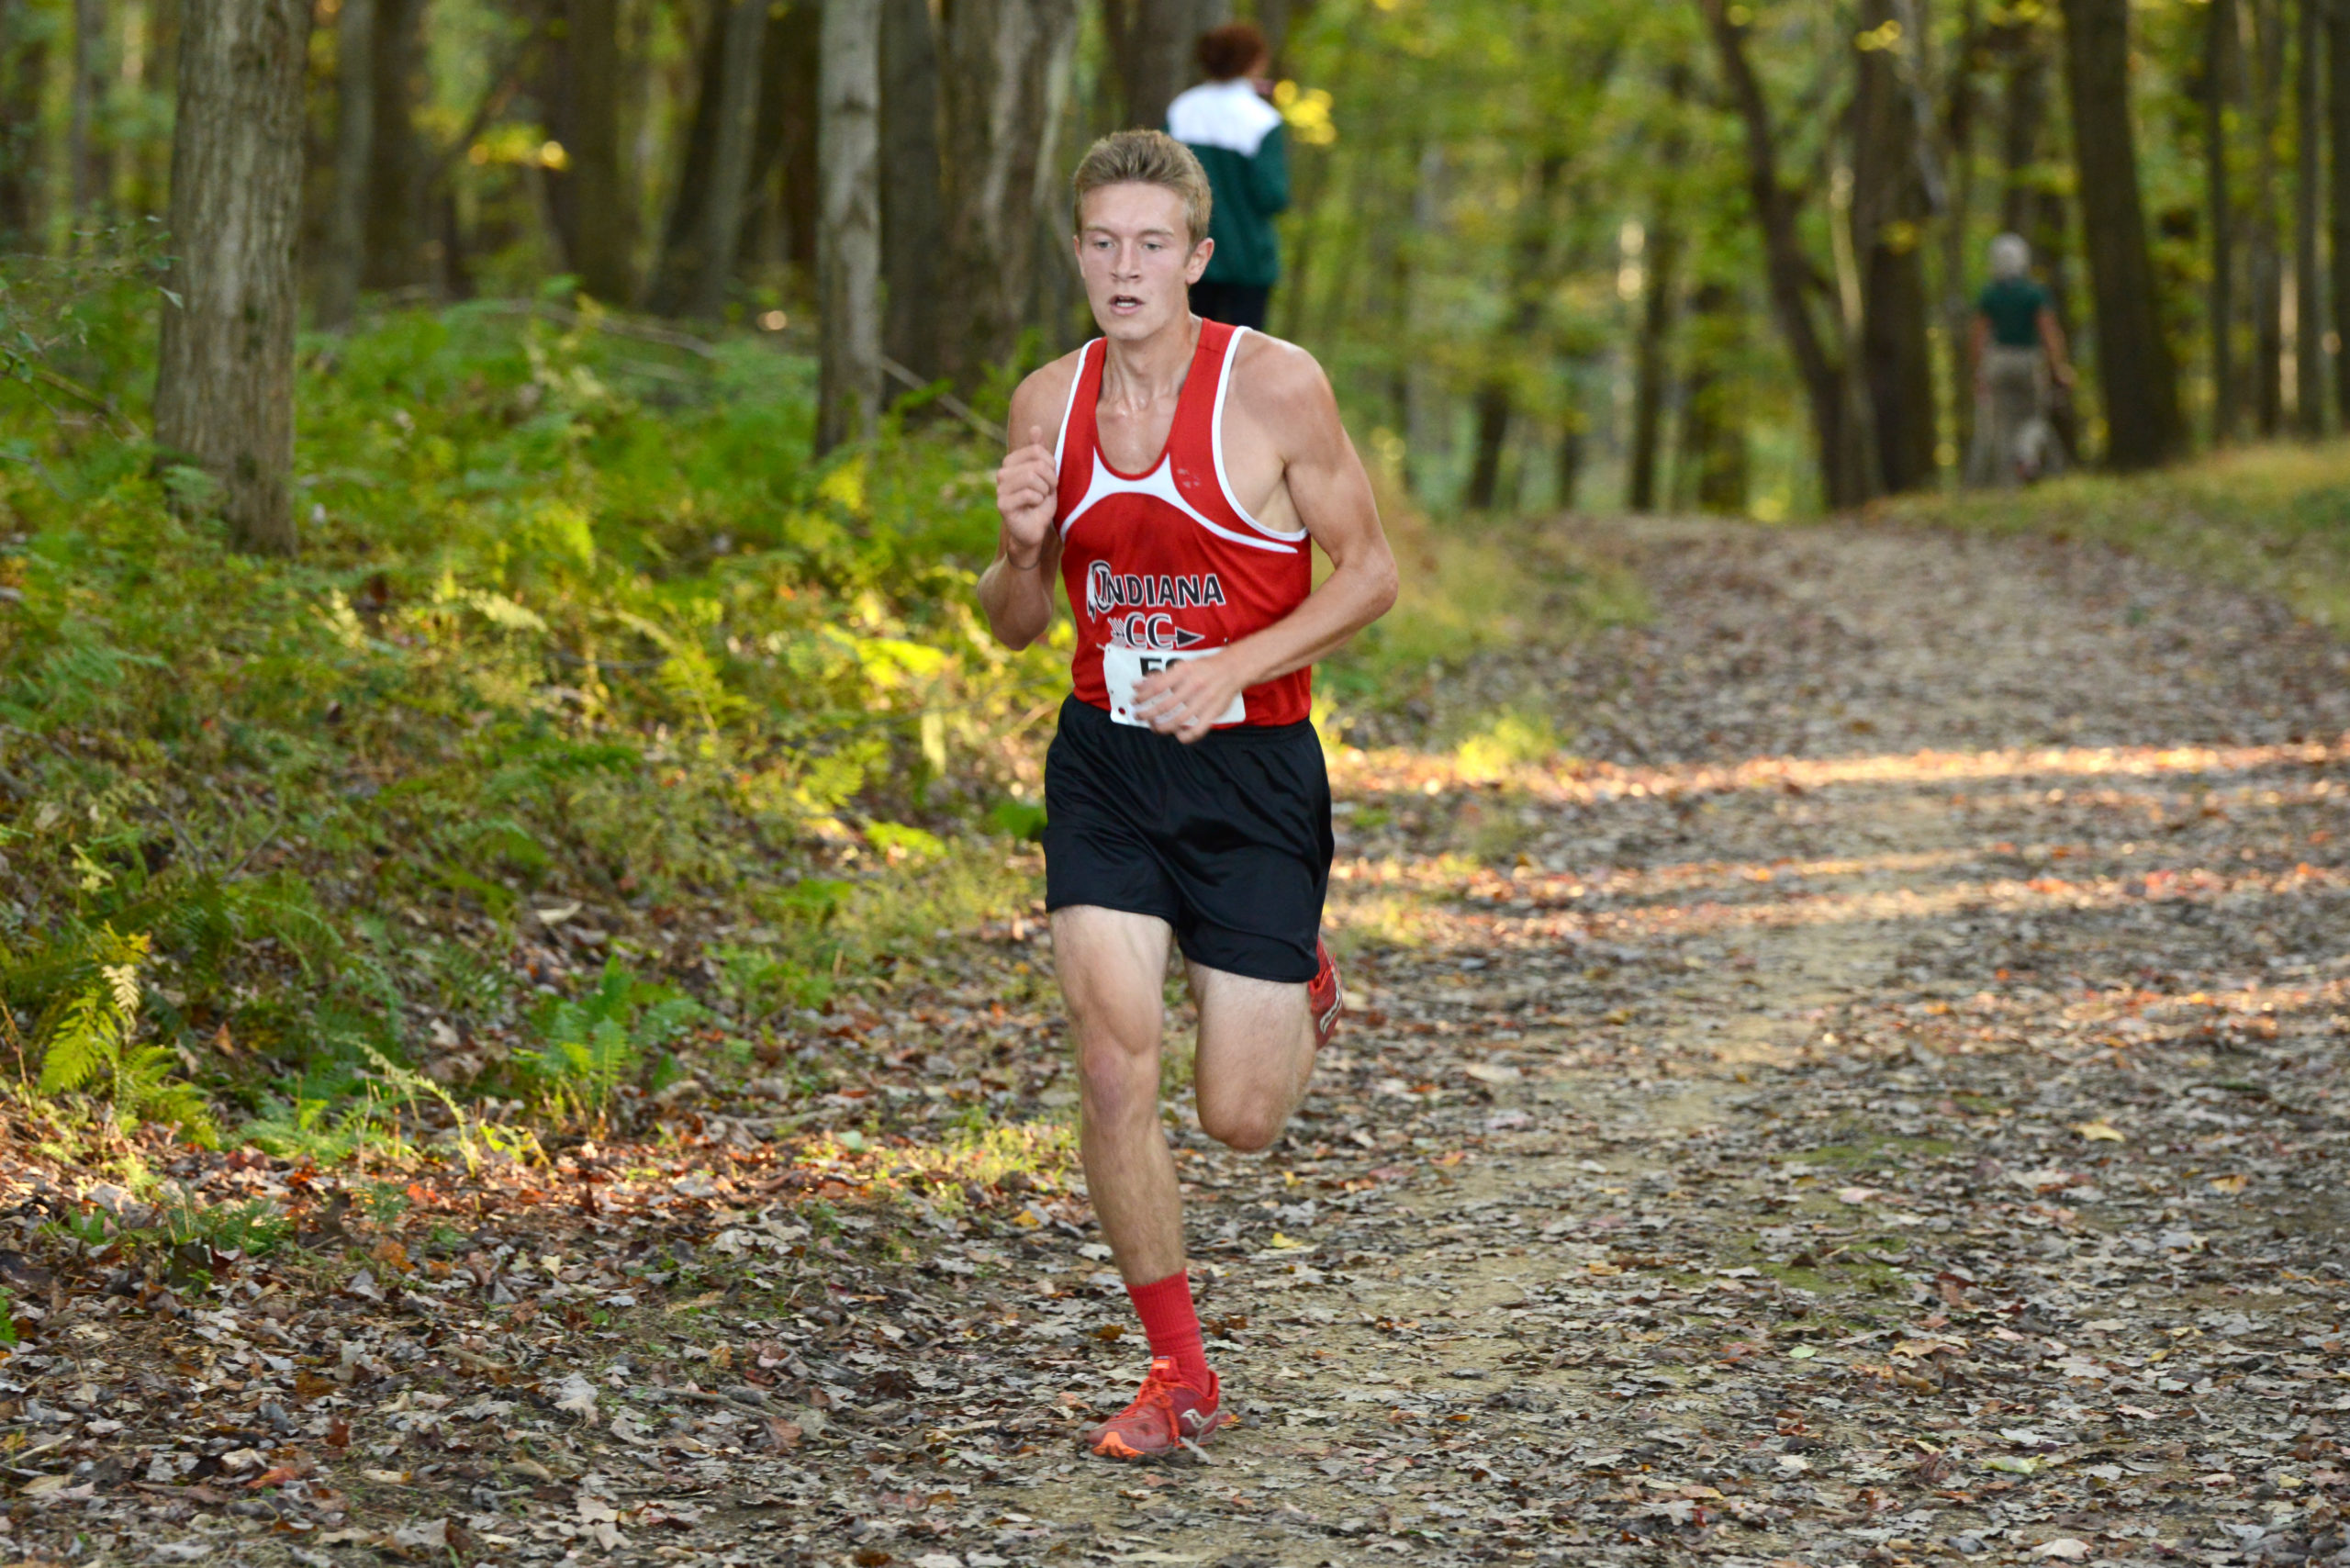 Kendall Branan runs to third overall in the nation